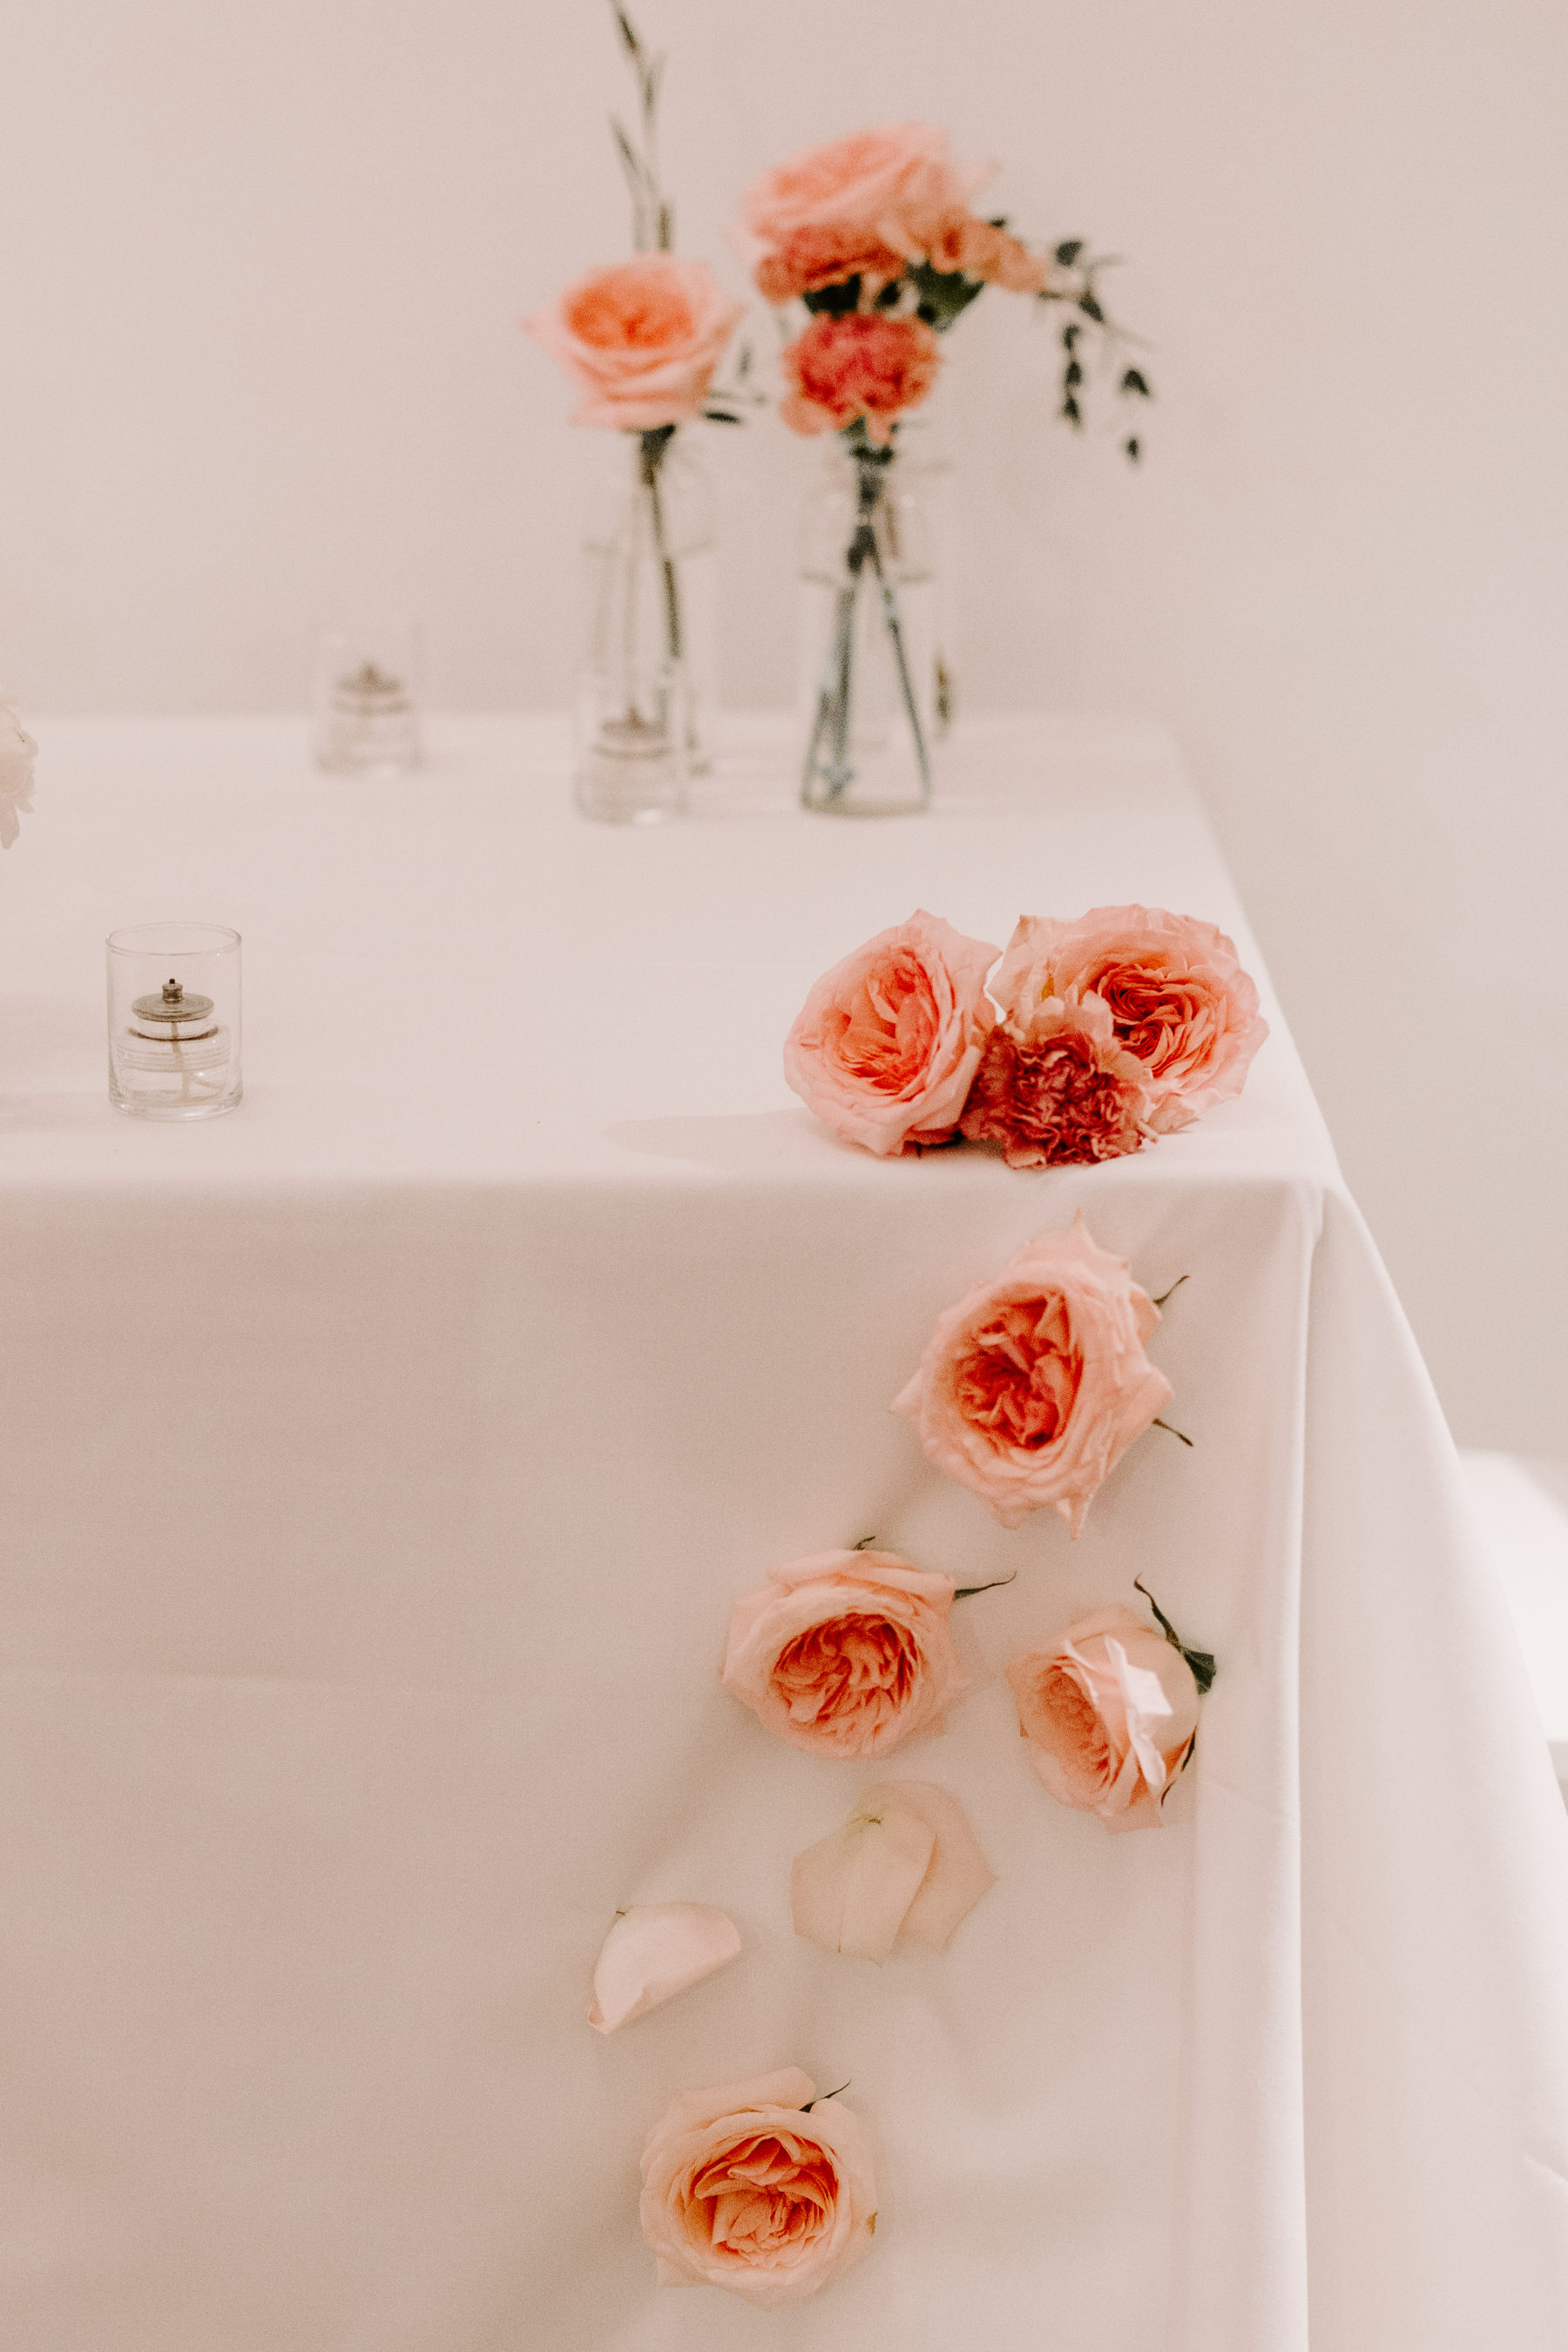 Wedding flower details: Abigail Bridges Photography featured on Nashville Bride Guide